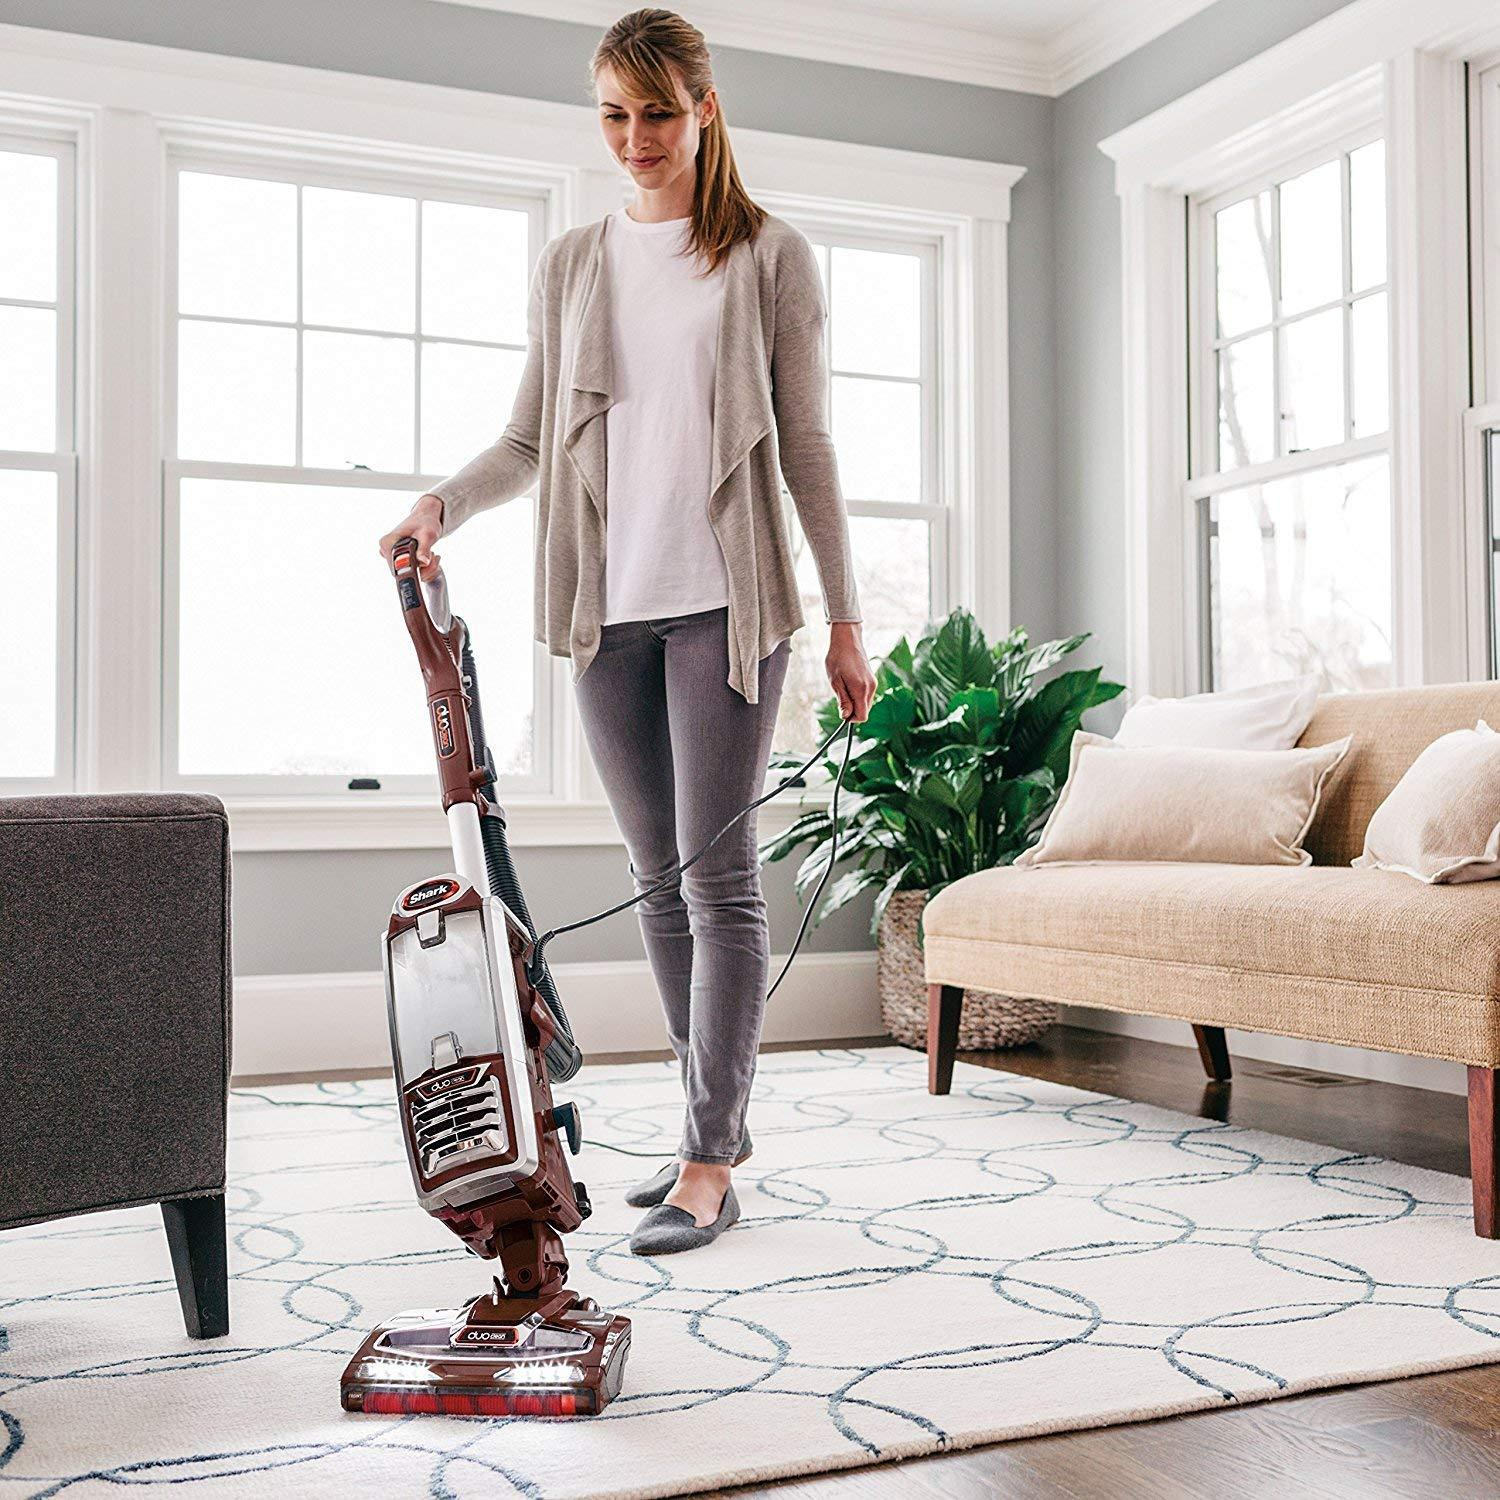 Shark NV800 DuoClean Powered Lift Away Speed Upright Vacuum (Renewed)